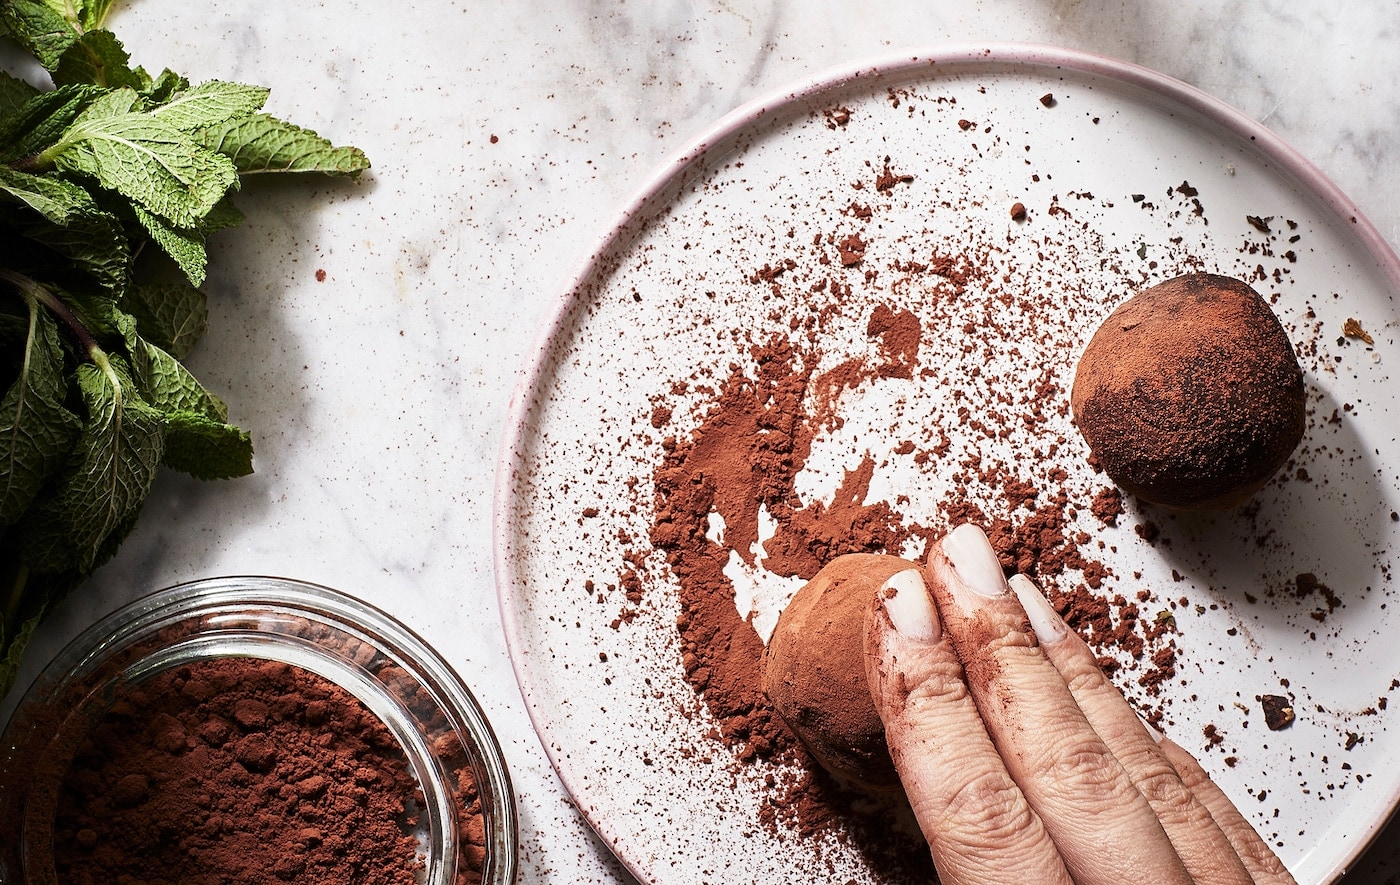 A hand rolling a meatball-sized, round truffle in cocoa powder on a small flat plate; fresh mint leaves on the side.